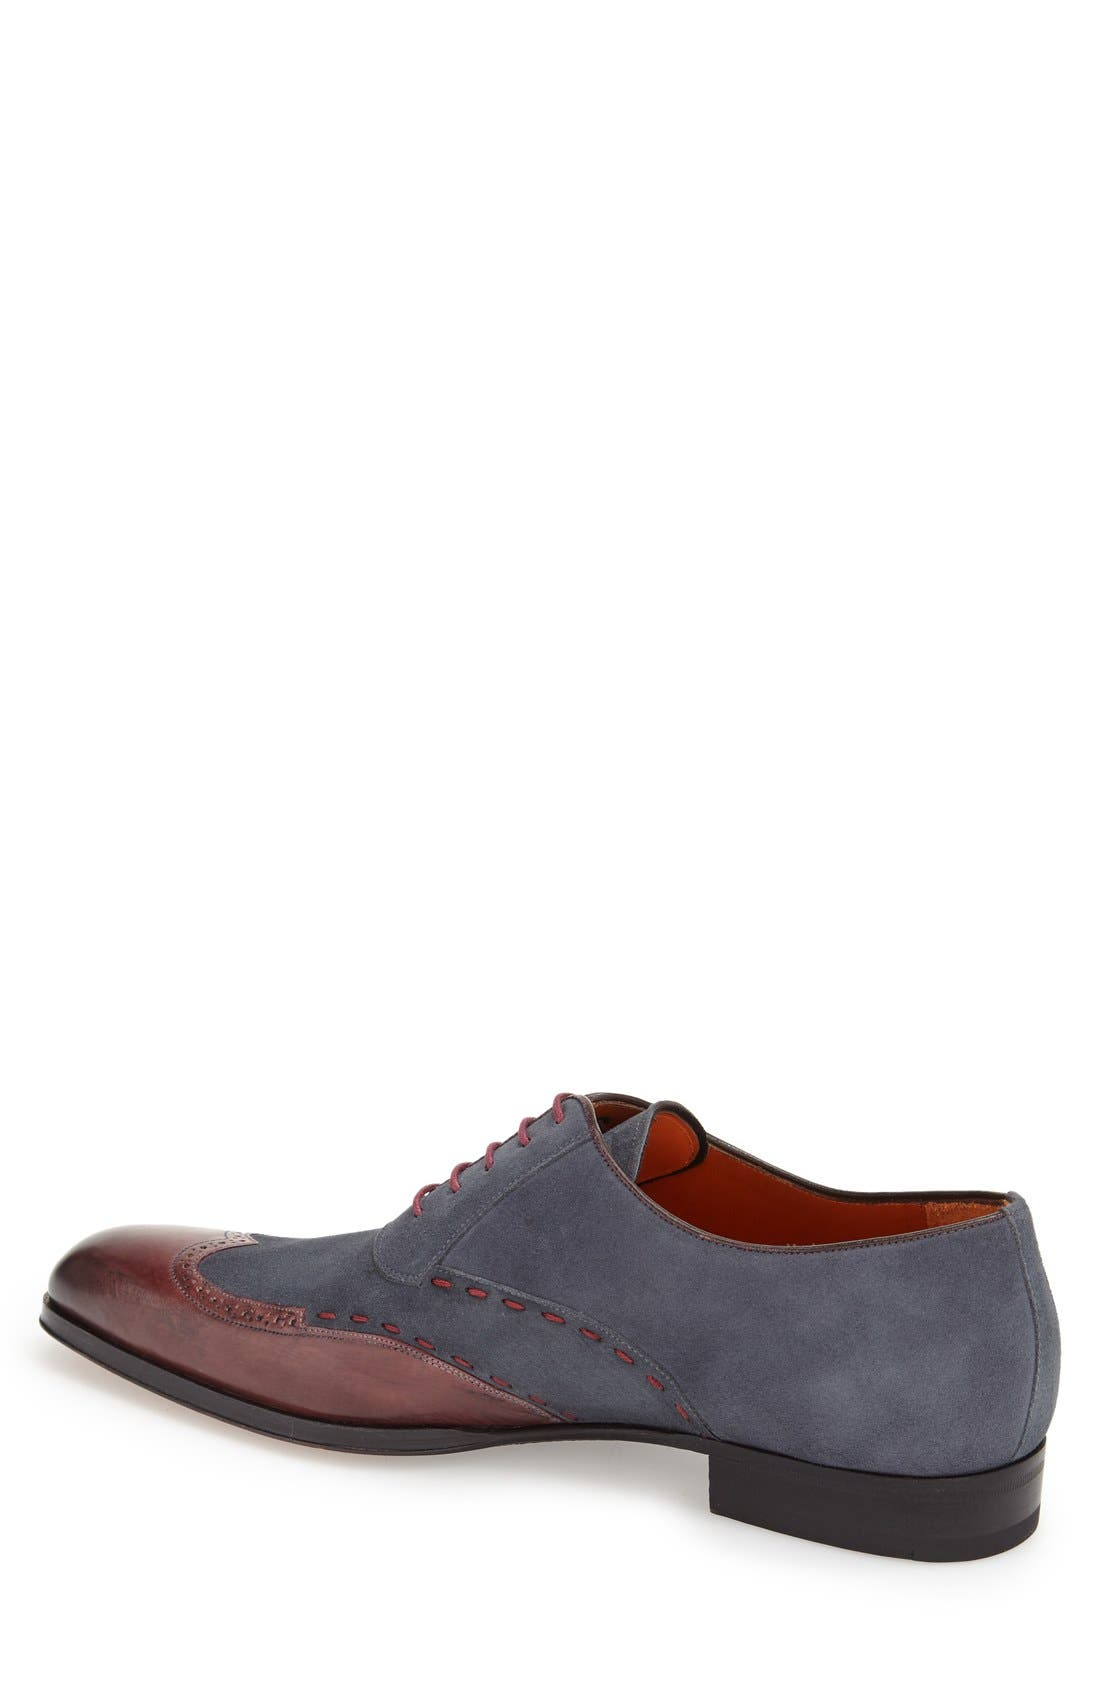 'Ronda' Spectator Shoe,                             Alternate thumbnail 2, color,                             Burgundy/ Grey